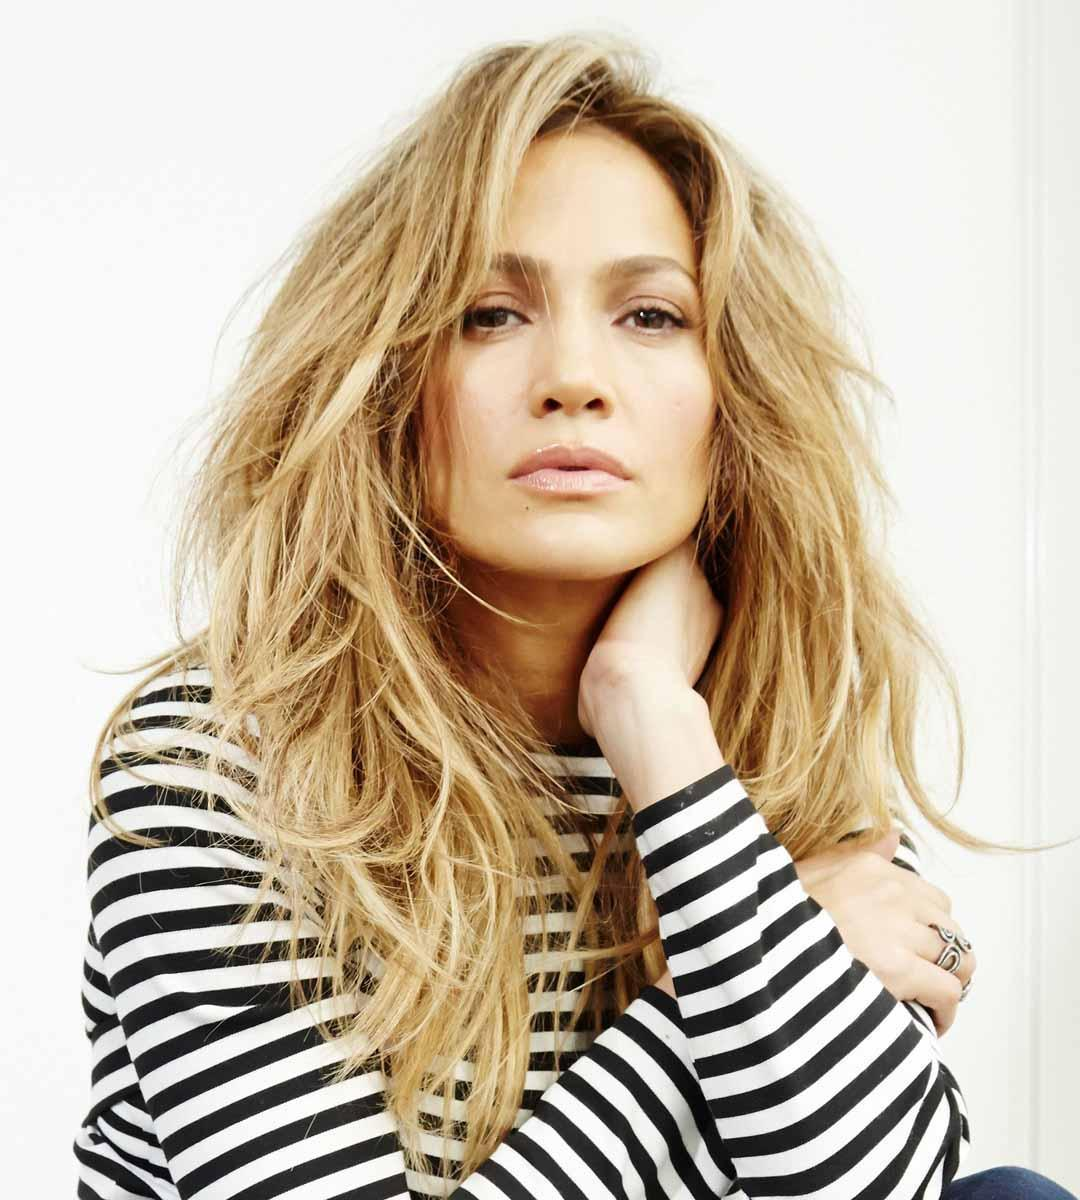 Jennifer Lopez Wallpapers Hd 2019 For Android Apk Download